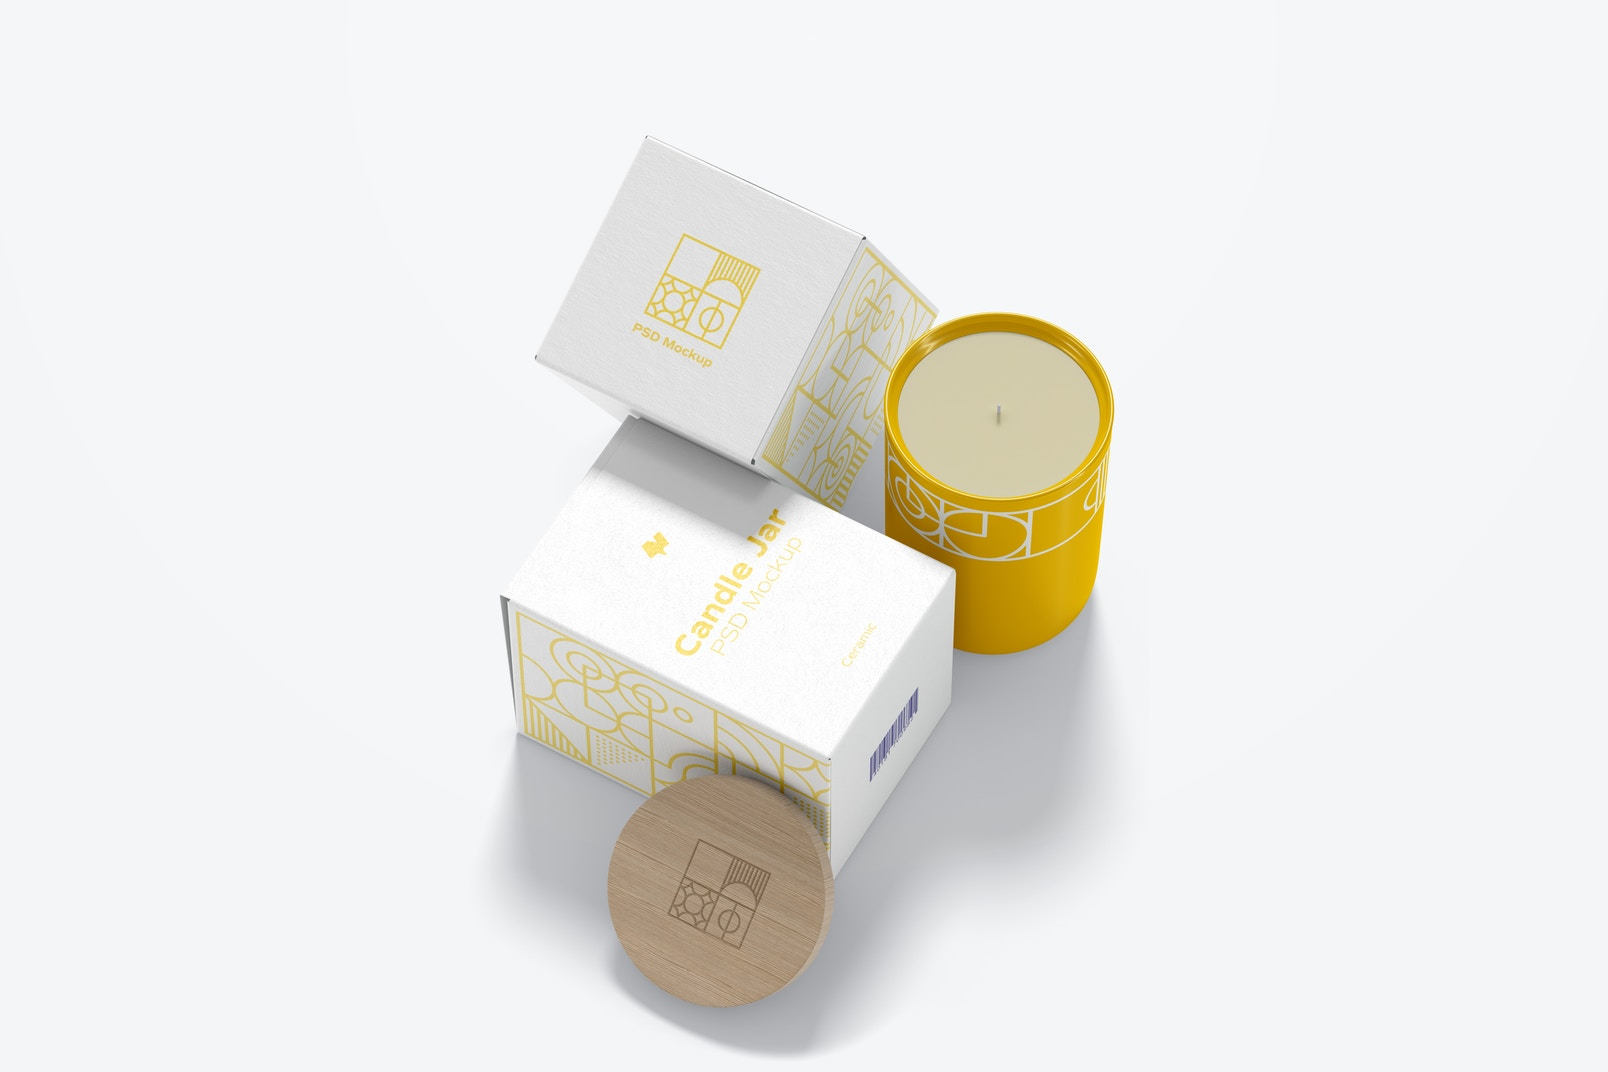 Ceramic Candle Jar with Boxes Mockup